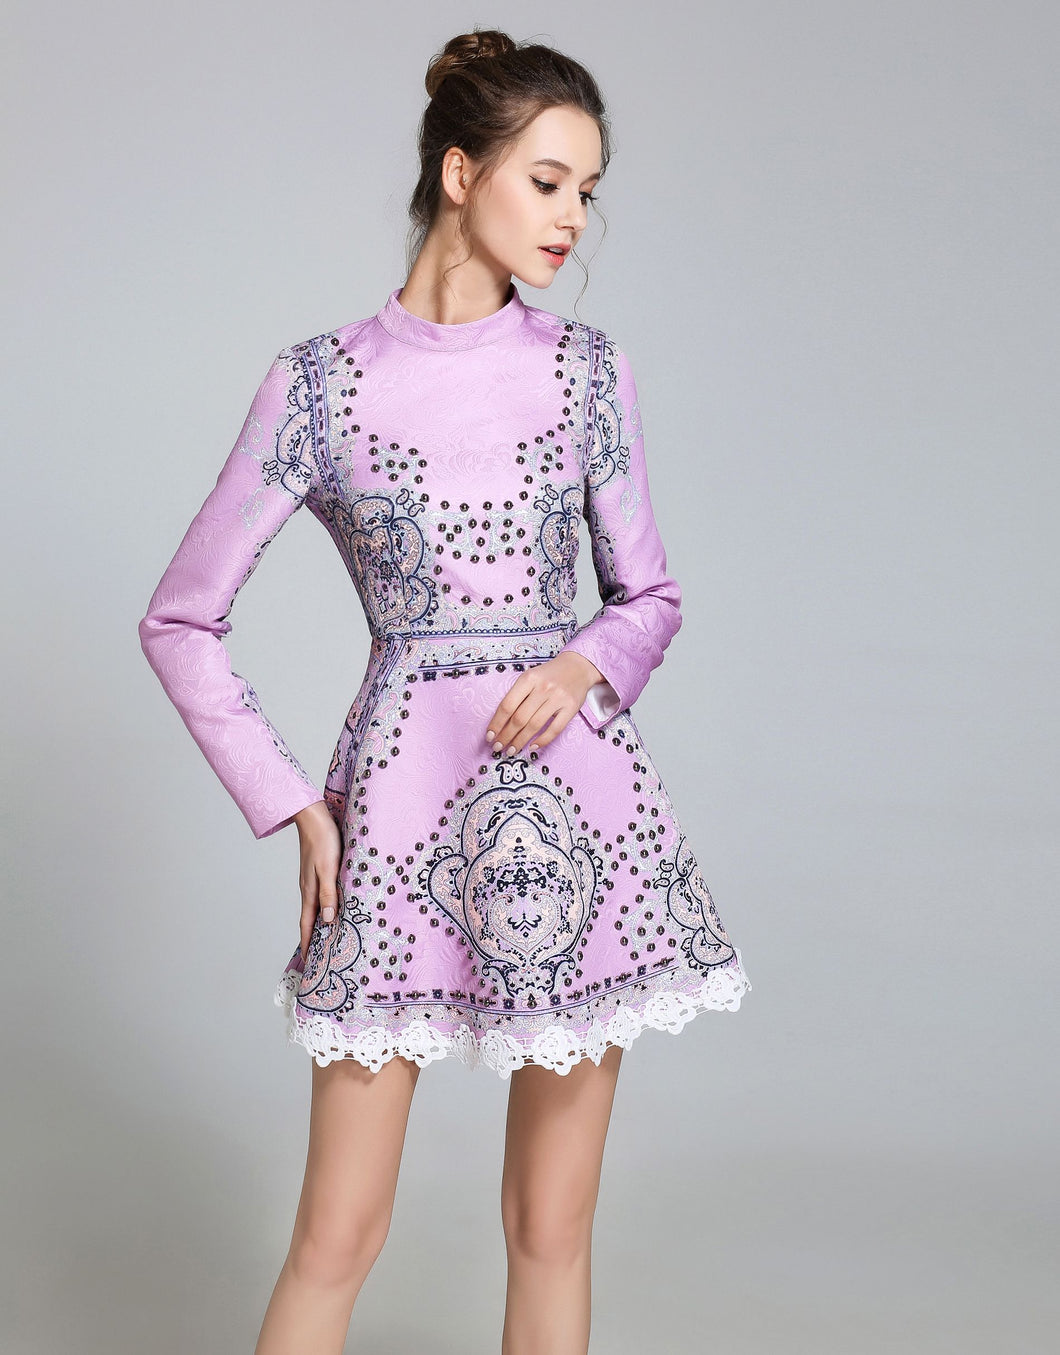 Lilac embellished Vintage Skater dress